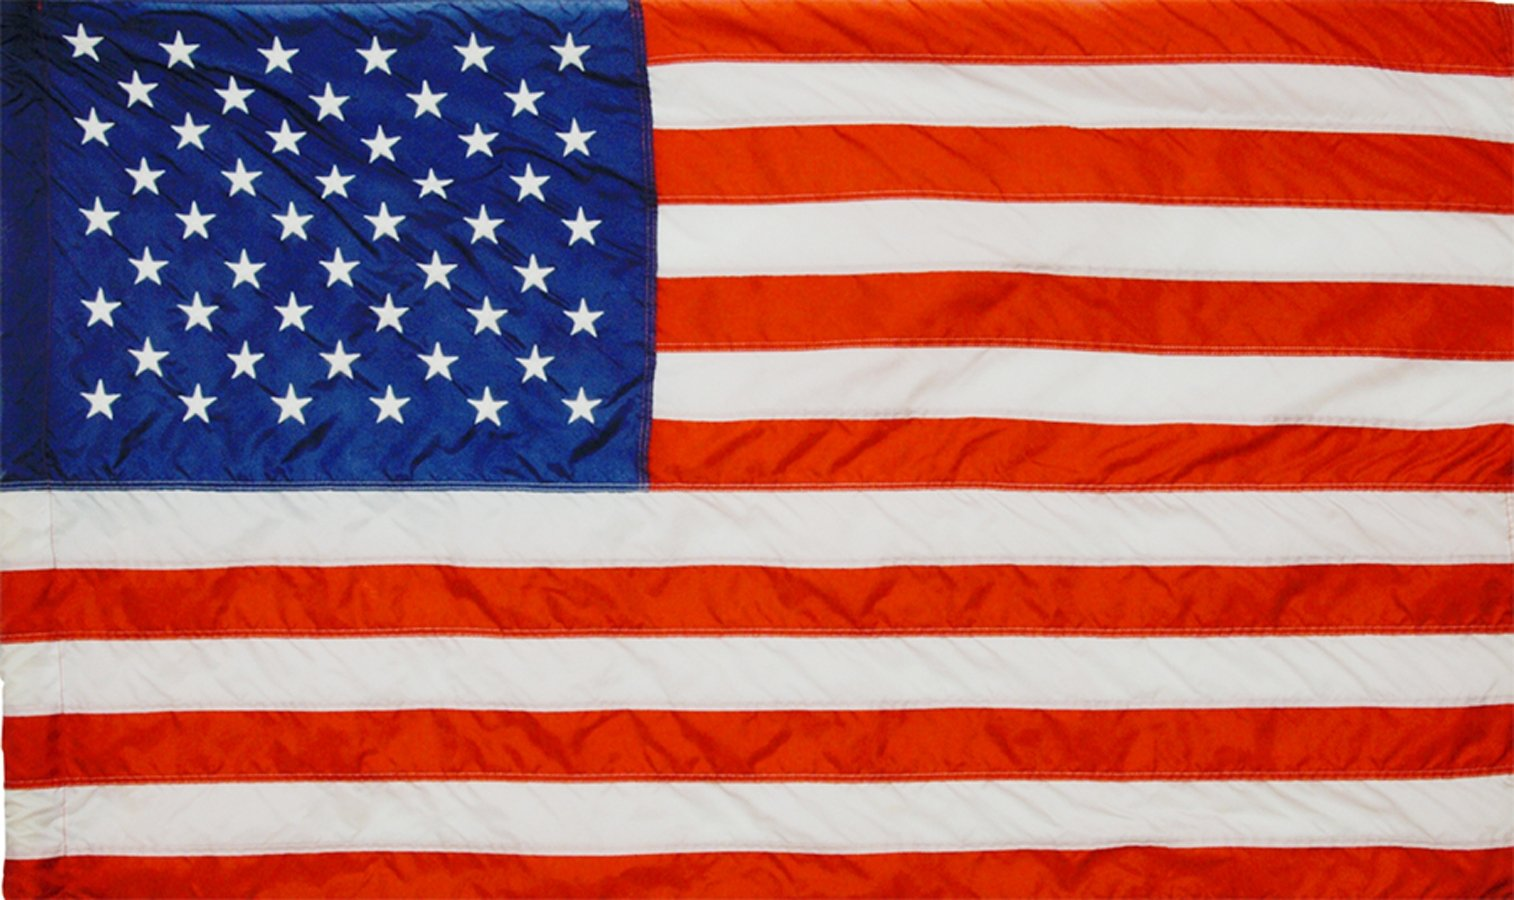 Valley Forge Flag 8 x 12 Foot Large Commercial-Grade Nylon US American Flag